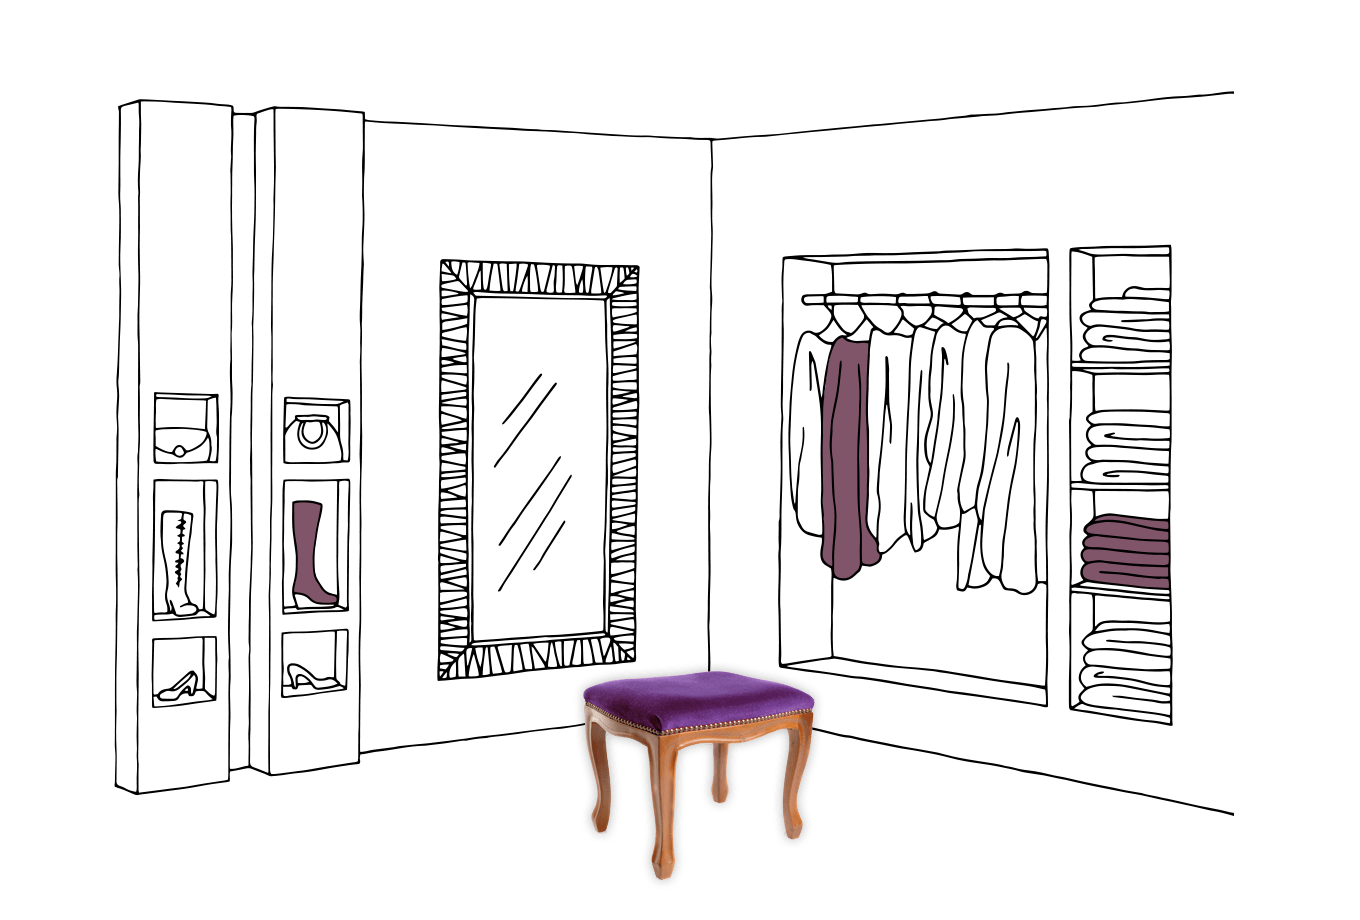 commercial shop owner insurance illustration of clothes shop changing room